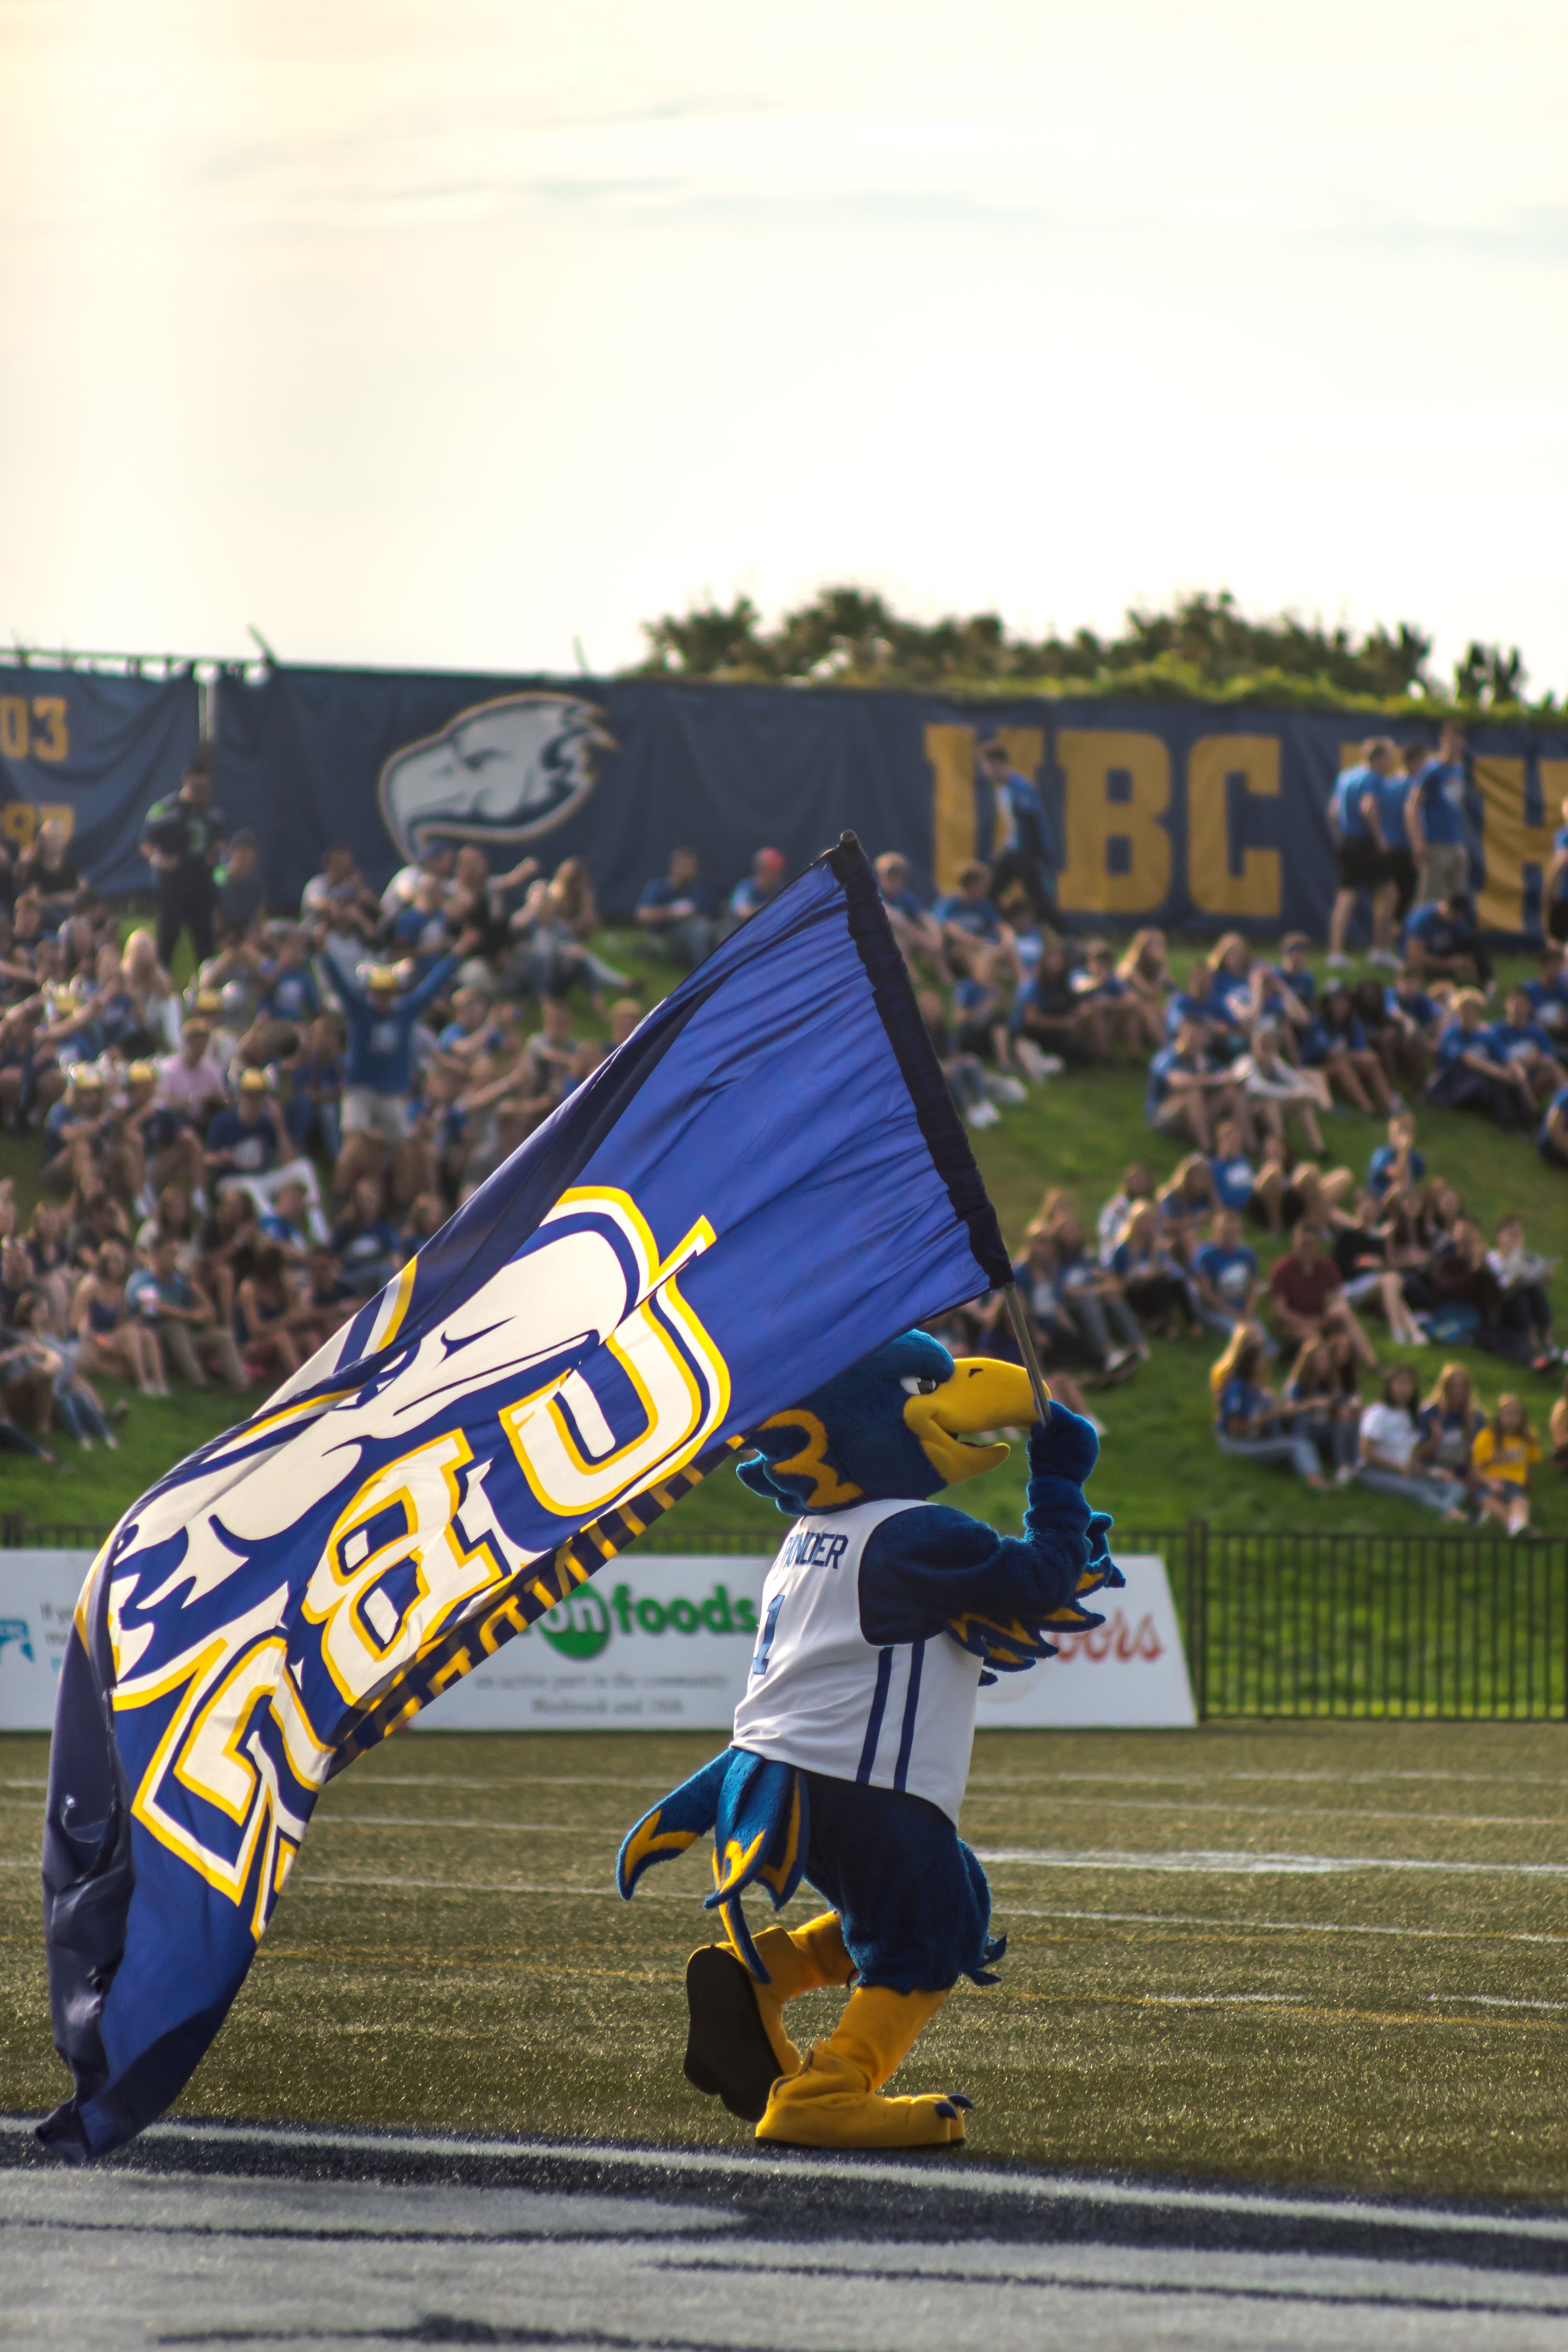 The UBC Thunderbird mascot running across the field with a flag